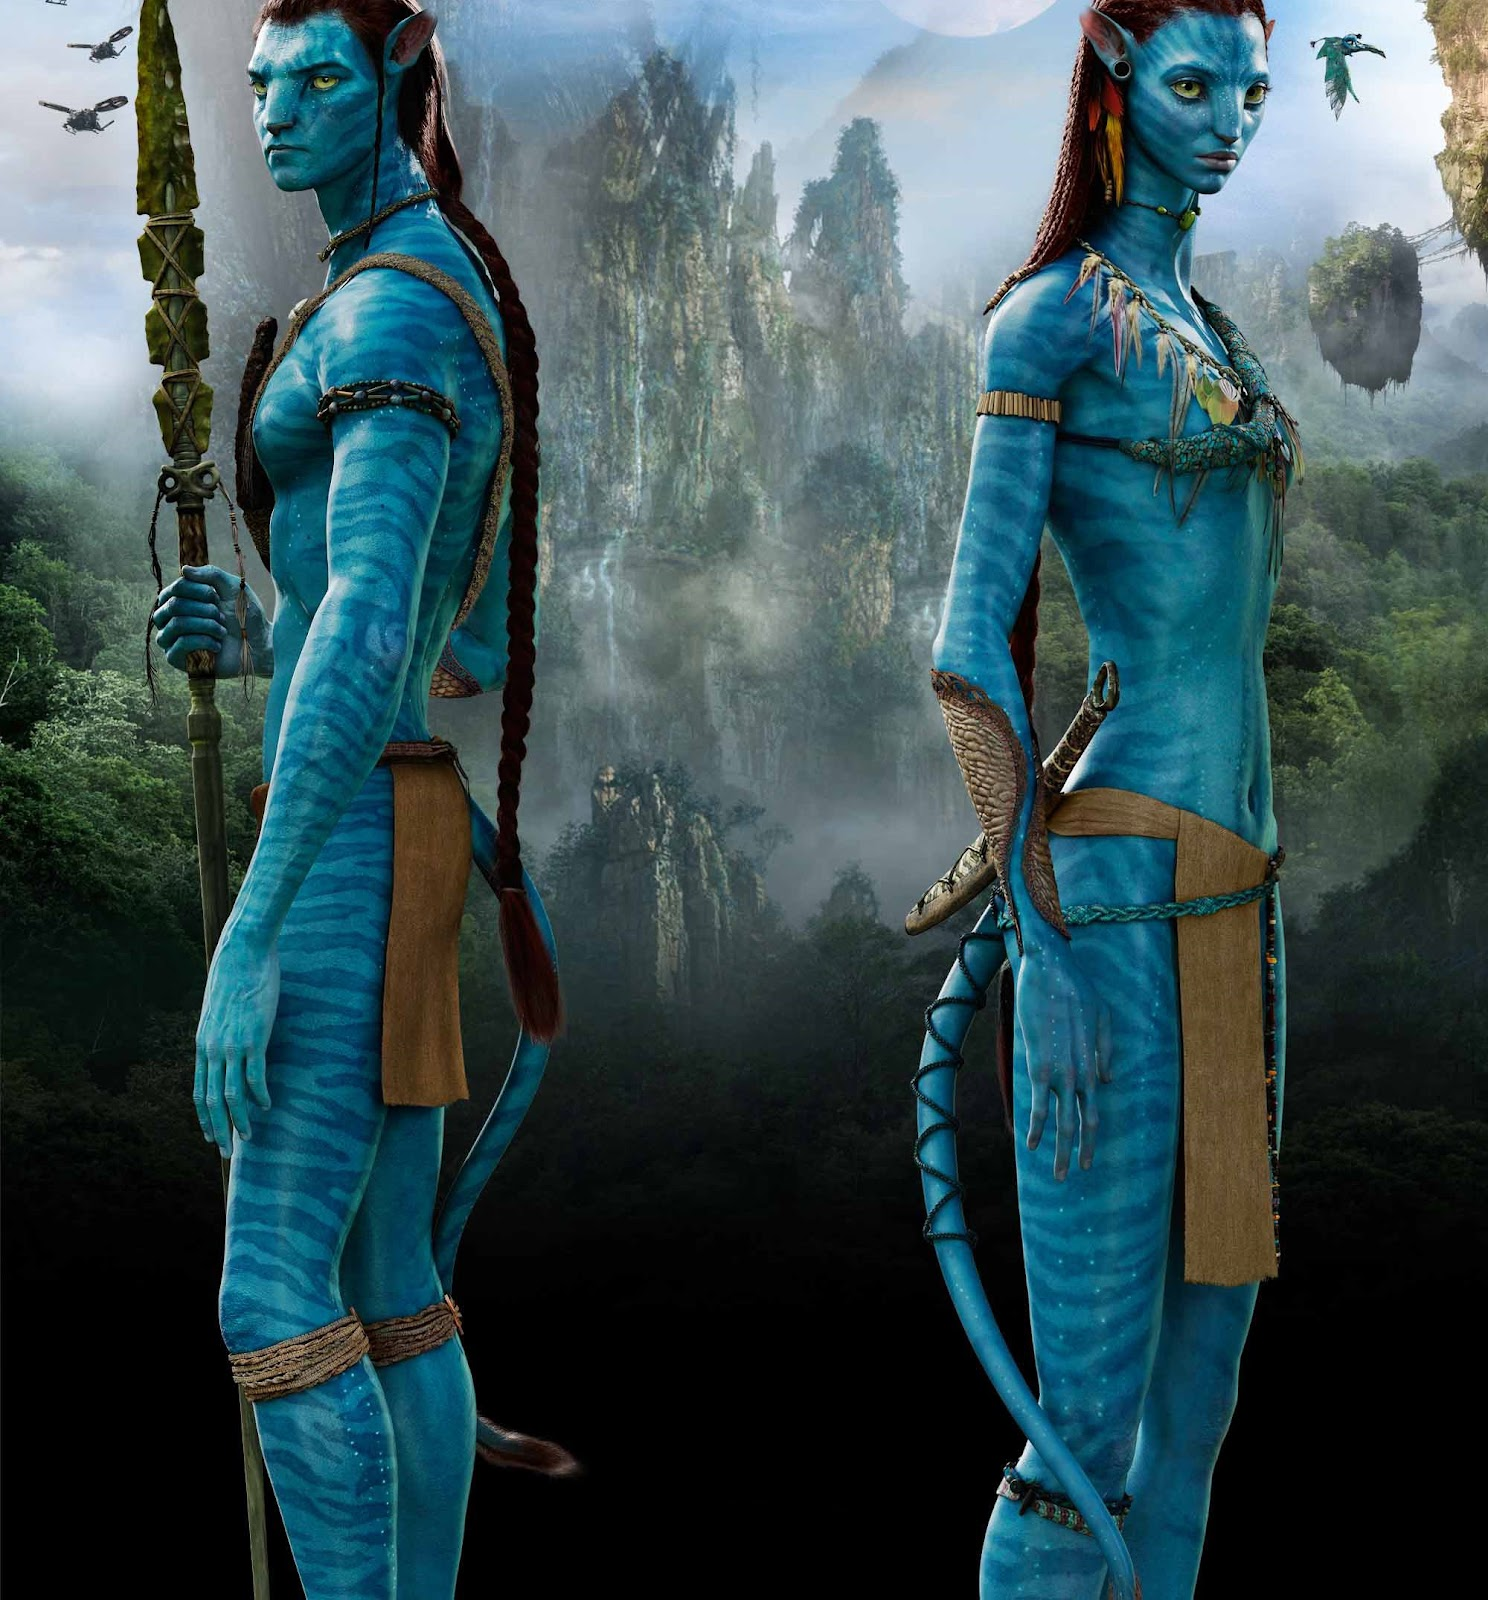 Prabhu Studio's Blog: AVATAR